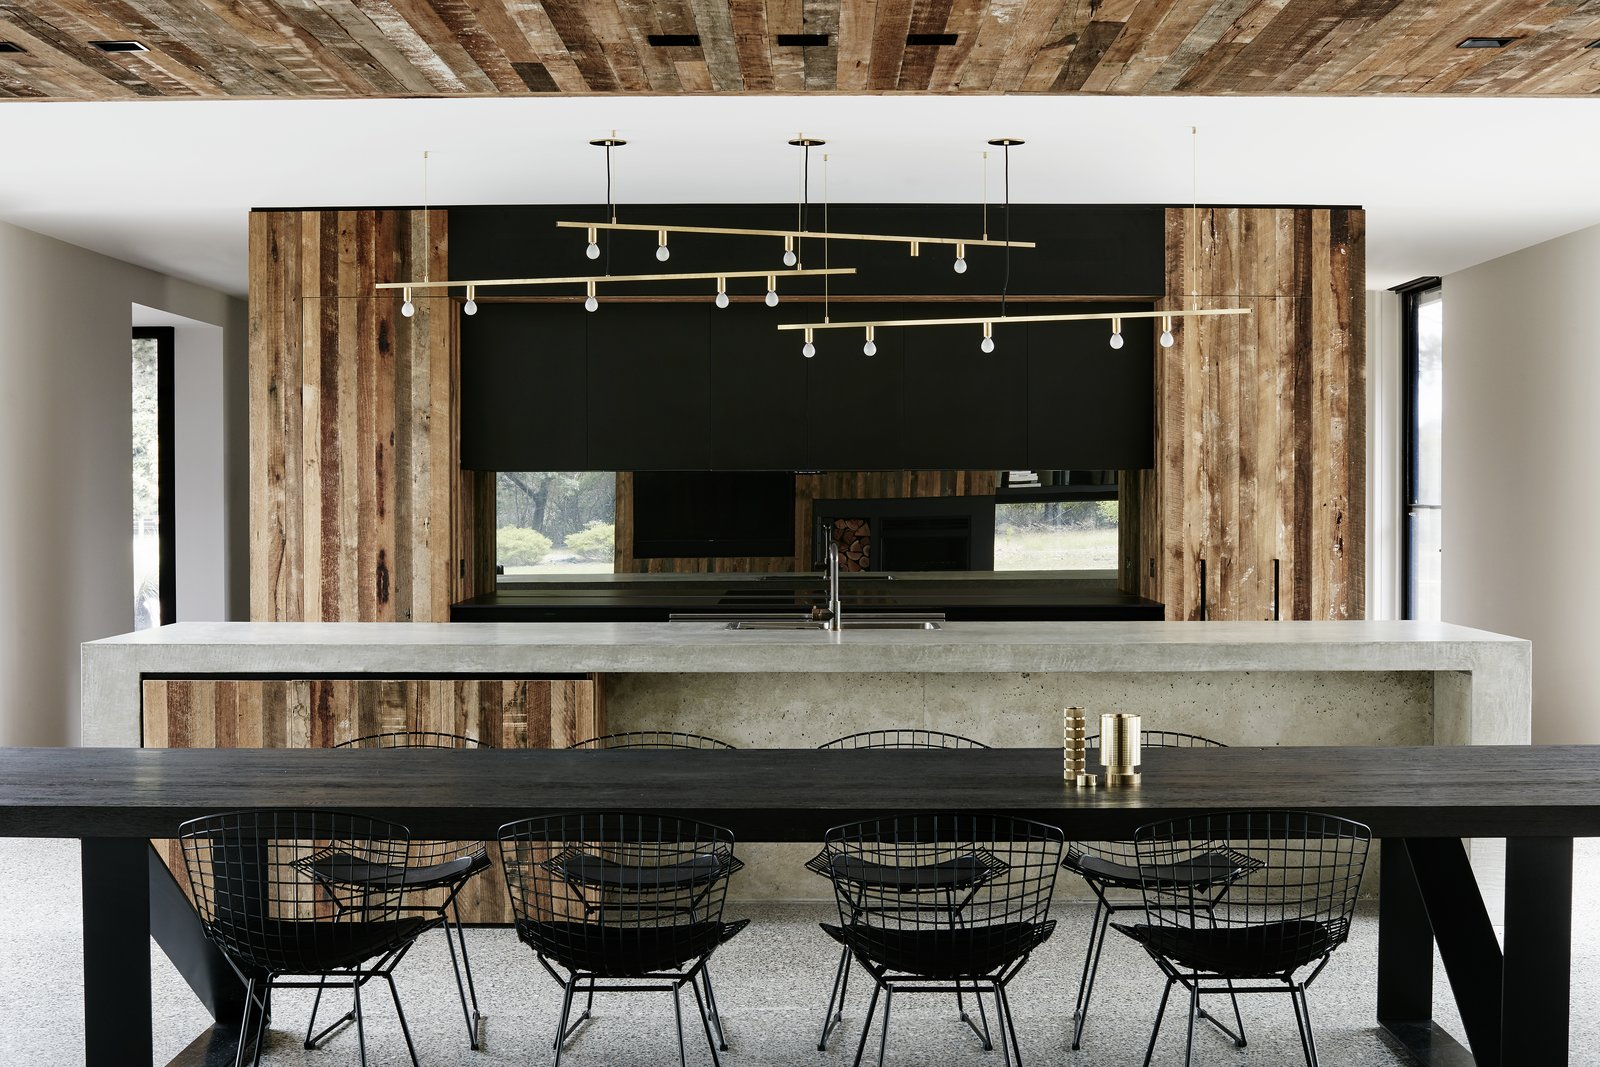 Kitchen, Wood Cabinet, Concrete Counter, Pendant Lighting, and Concrete Floor  Photo 1 of 9 in Recycled Wood Stars in an Ogle-Worthy Renovation in Australia